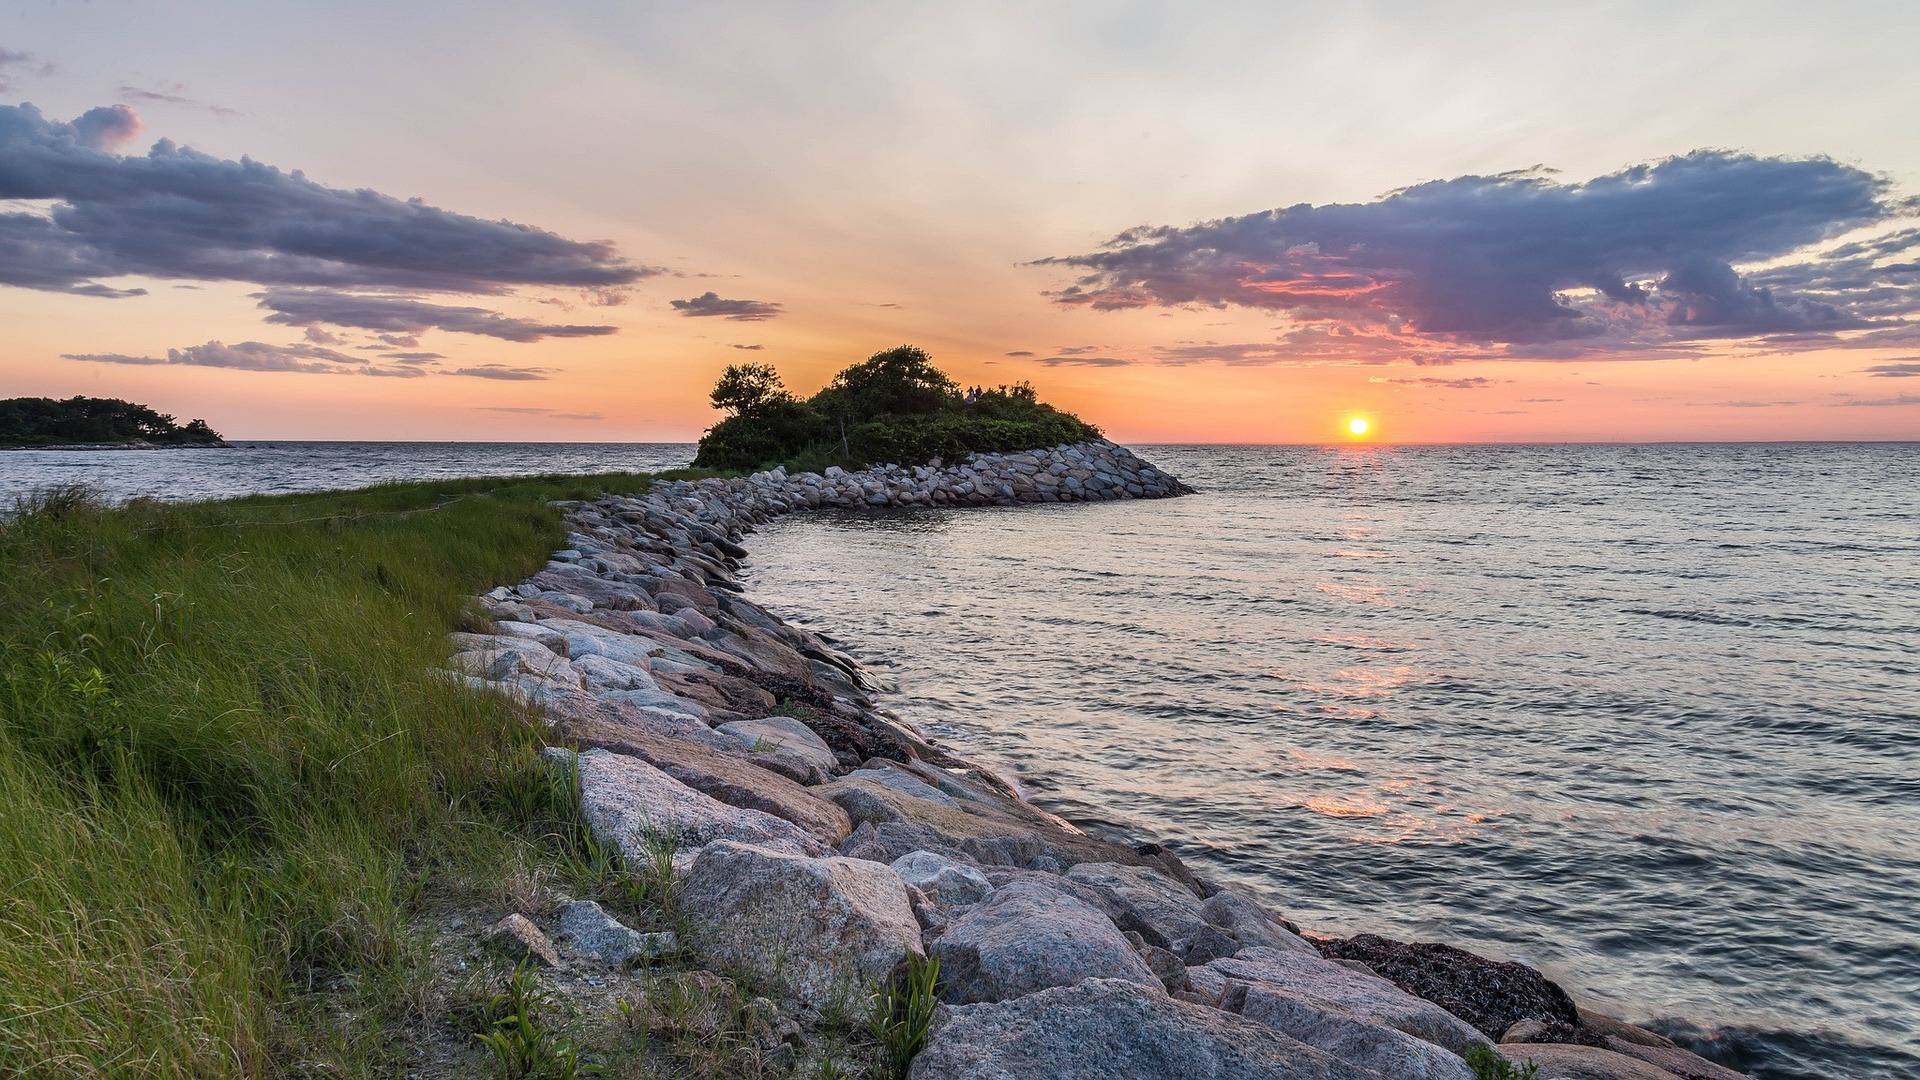 The best time to go to Cape Cod